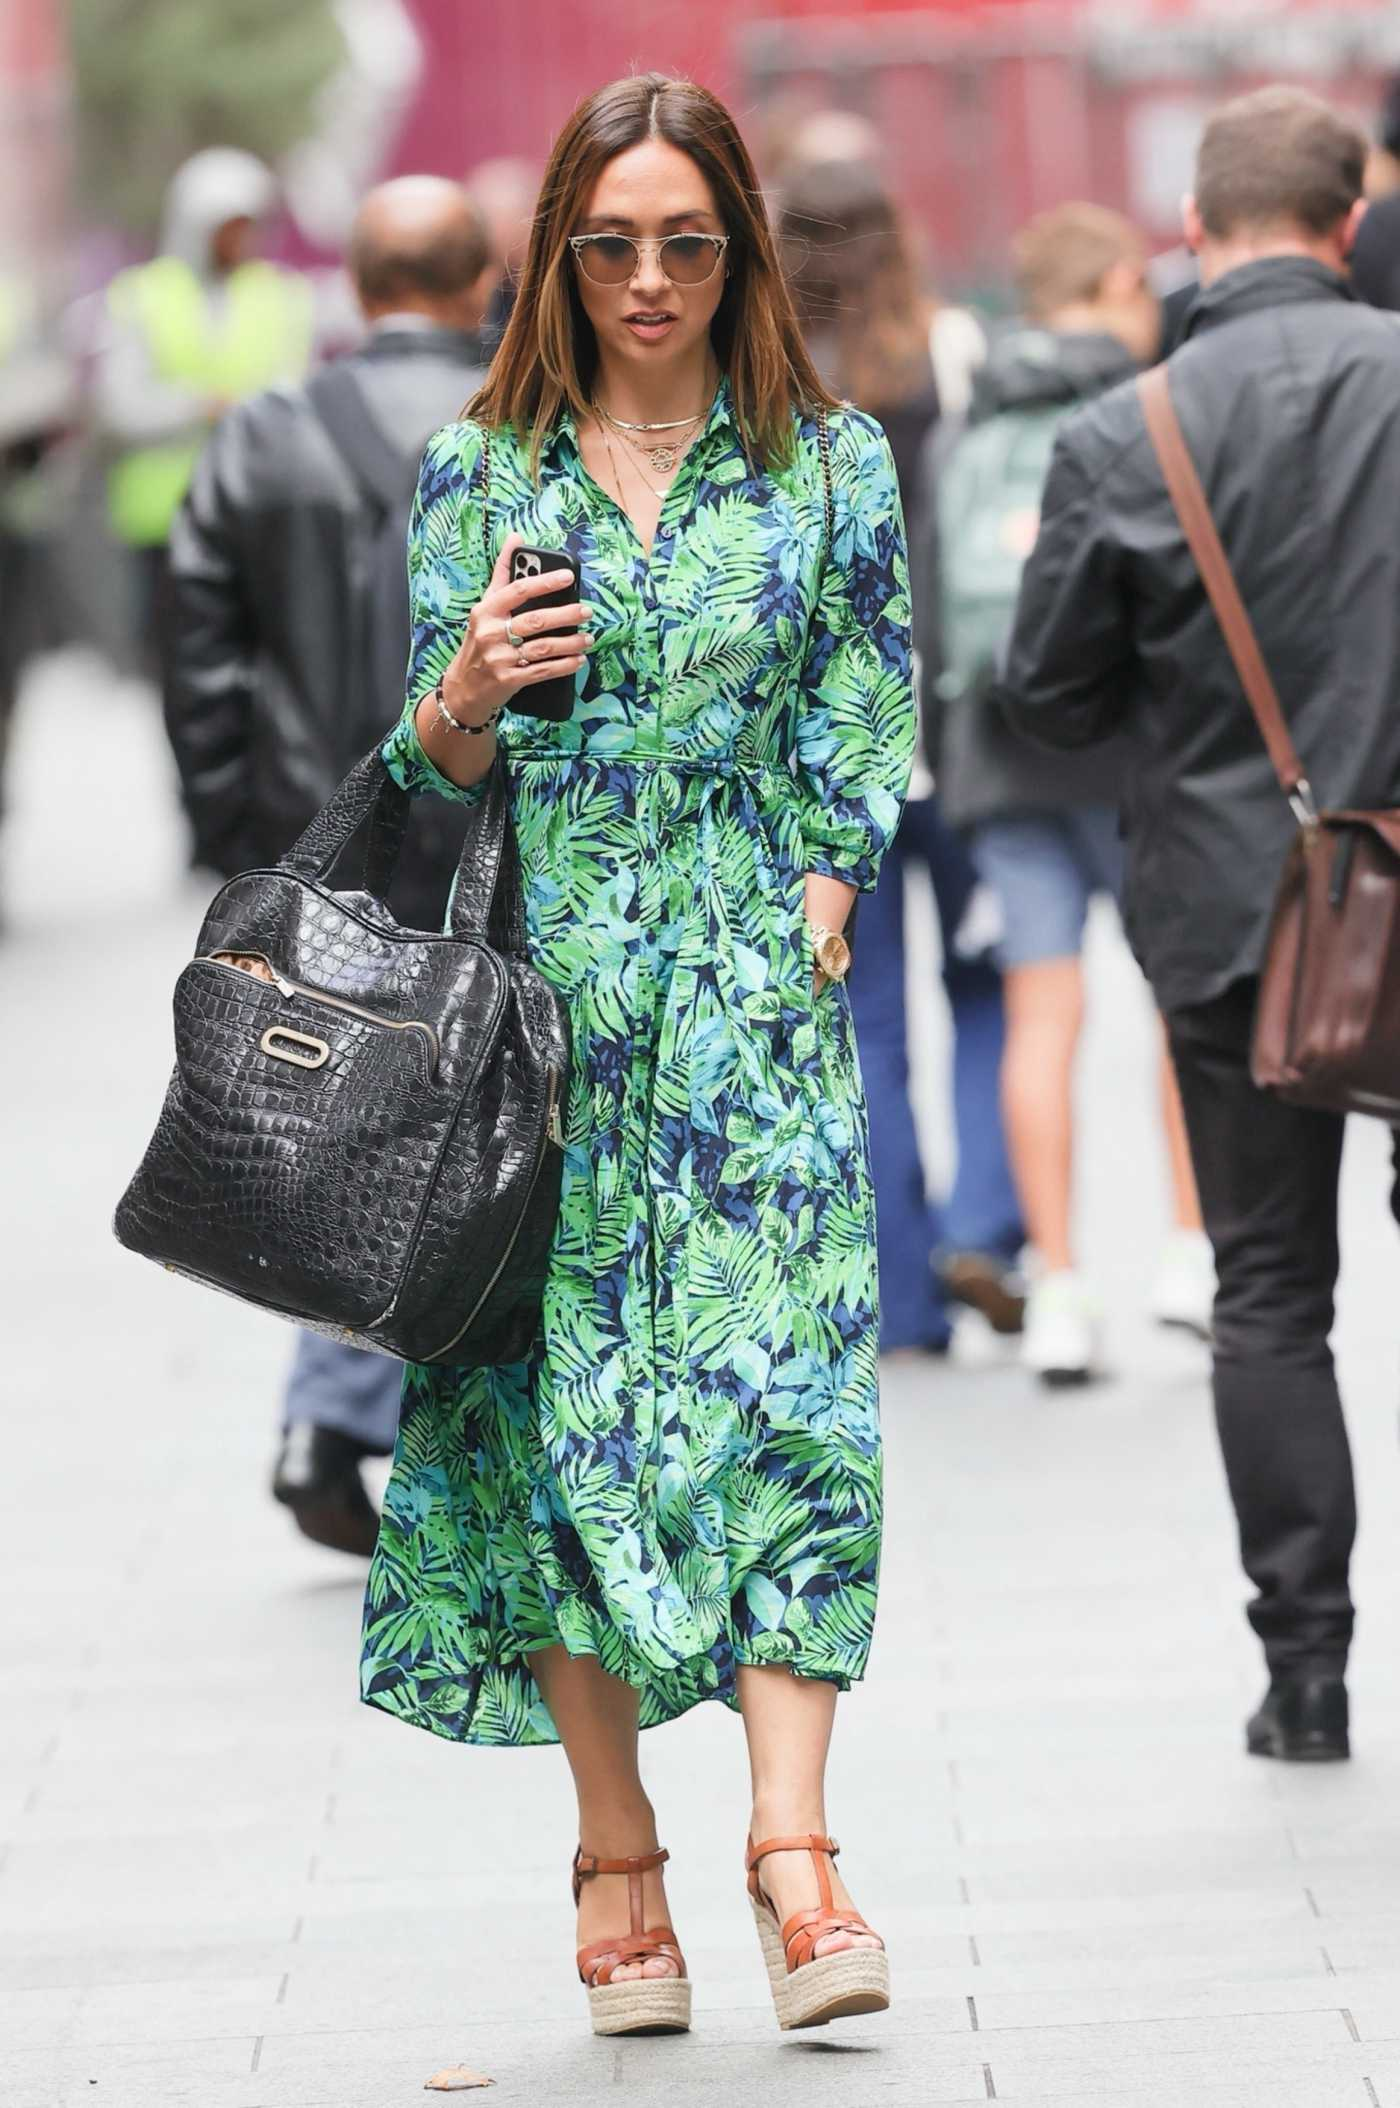 Myleene Klass in a Green Floral Dreess Arrives at the Smooth Radio in London 08/25/2021